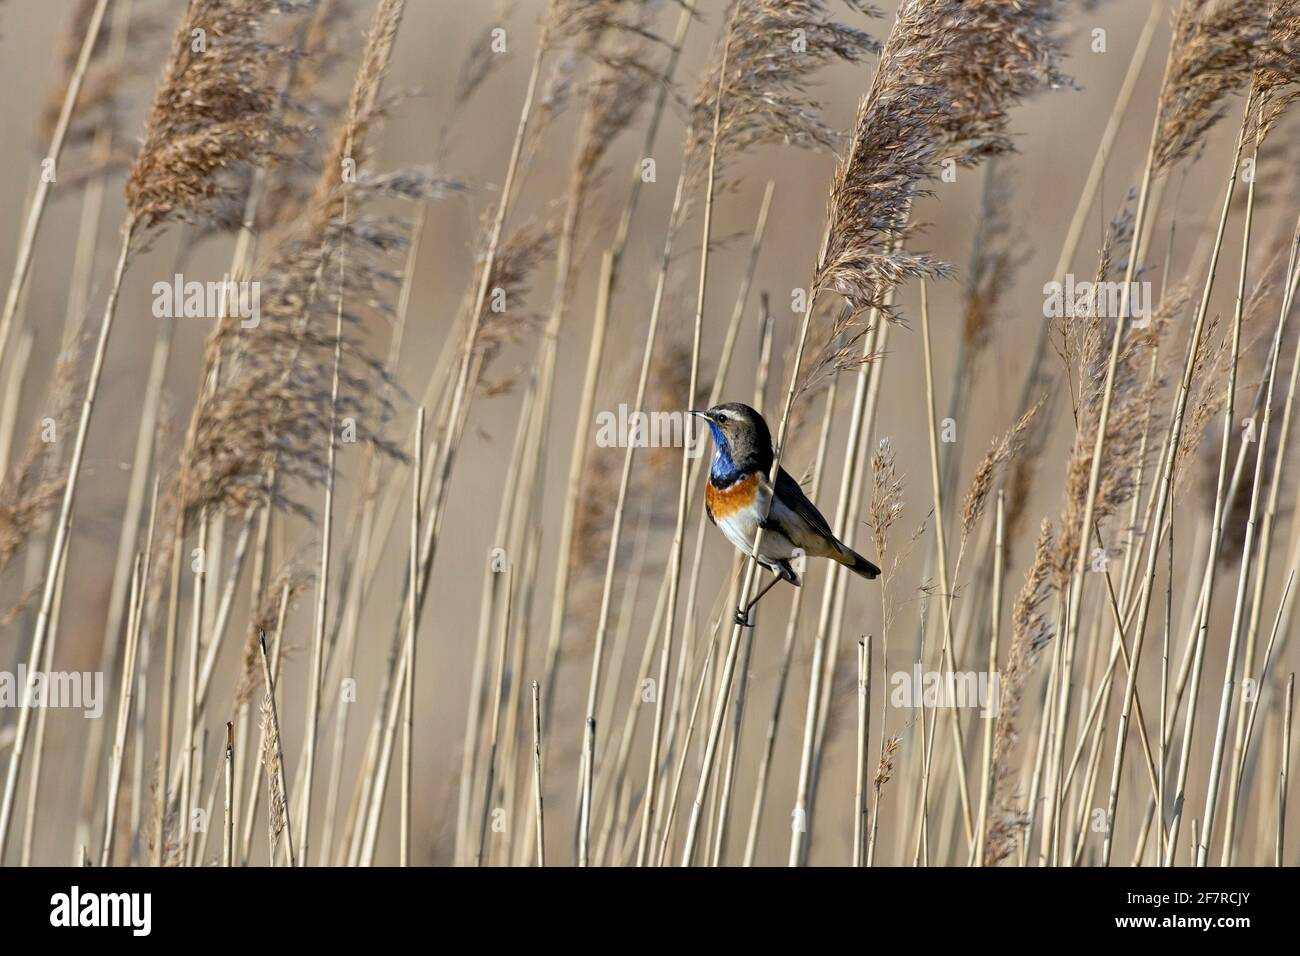 White-spotted bluethroat (Luscinia svecica cyanecula) male perched on reed stem and calling in wetland in spring Stock Photo